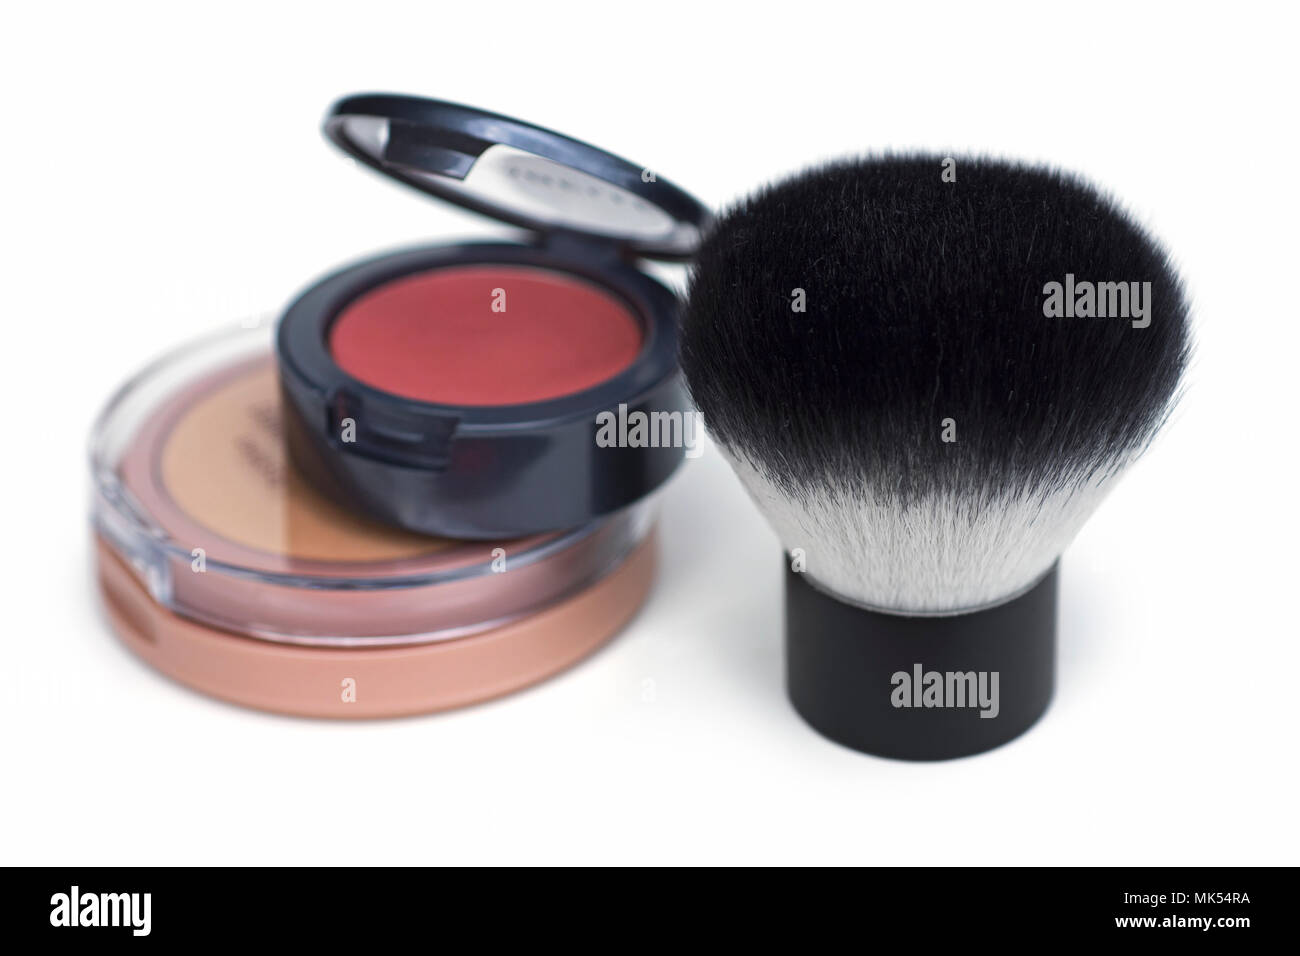 Kabuki Brush, Cosmetics, Powder, Makeup Cosmetic Compact - Stock Image